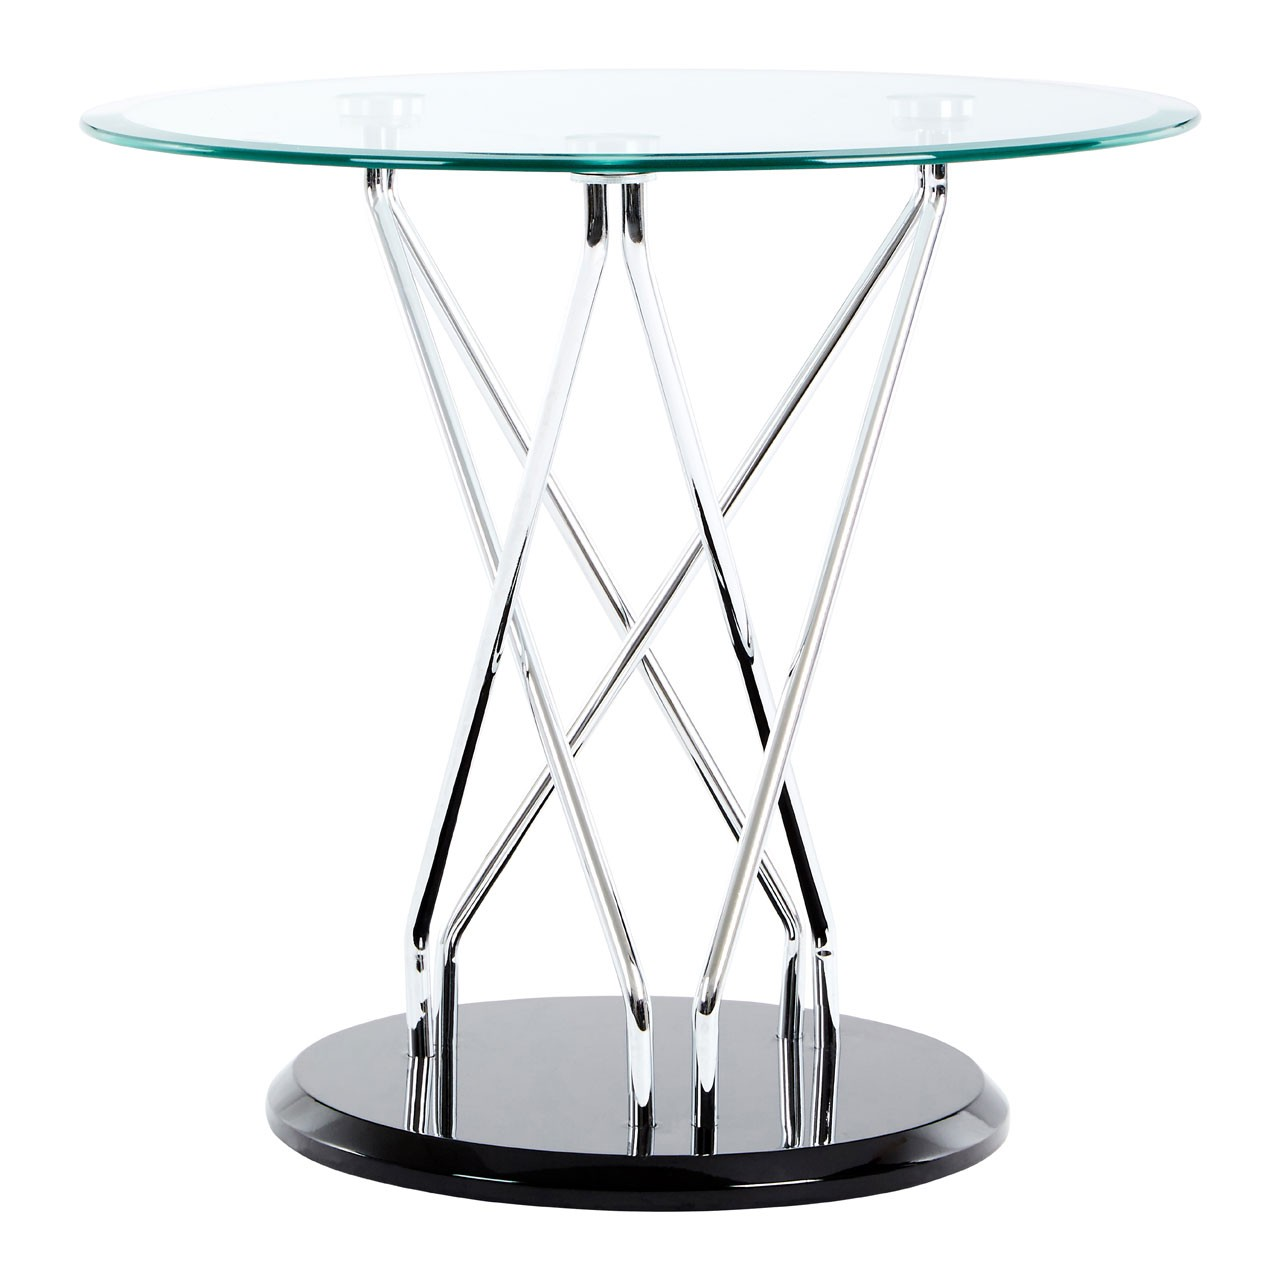 Halo Round Side Table, Glass - Black